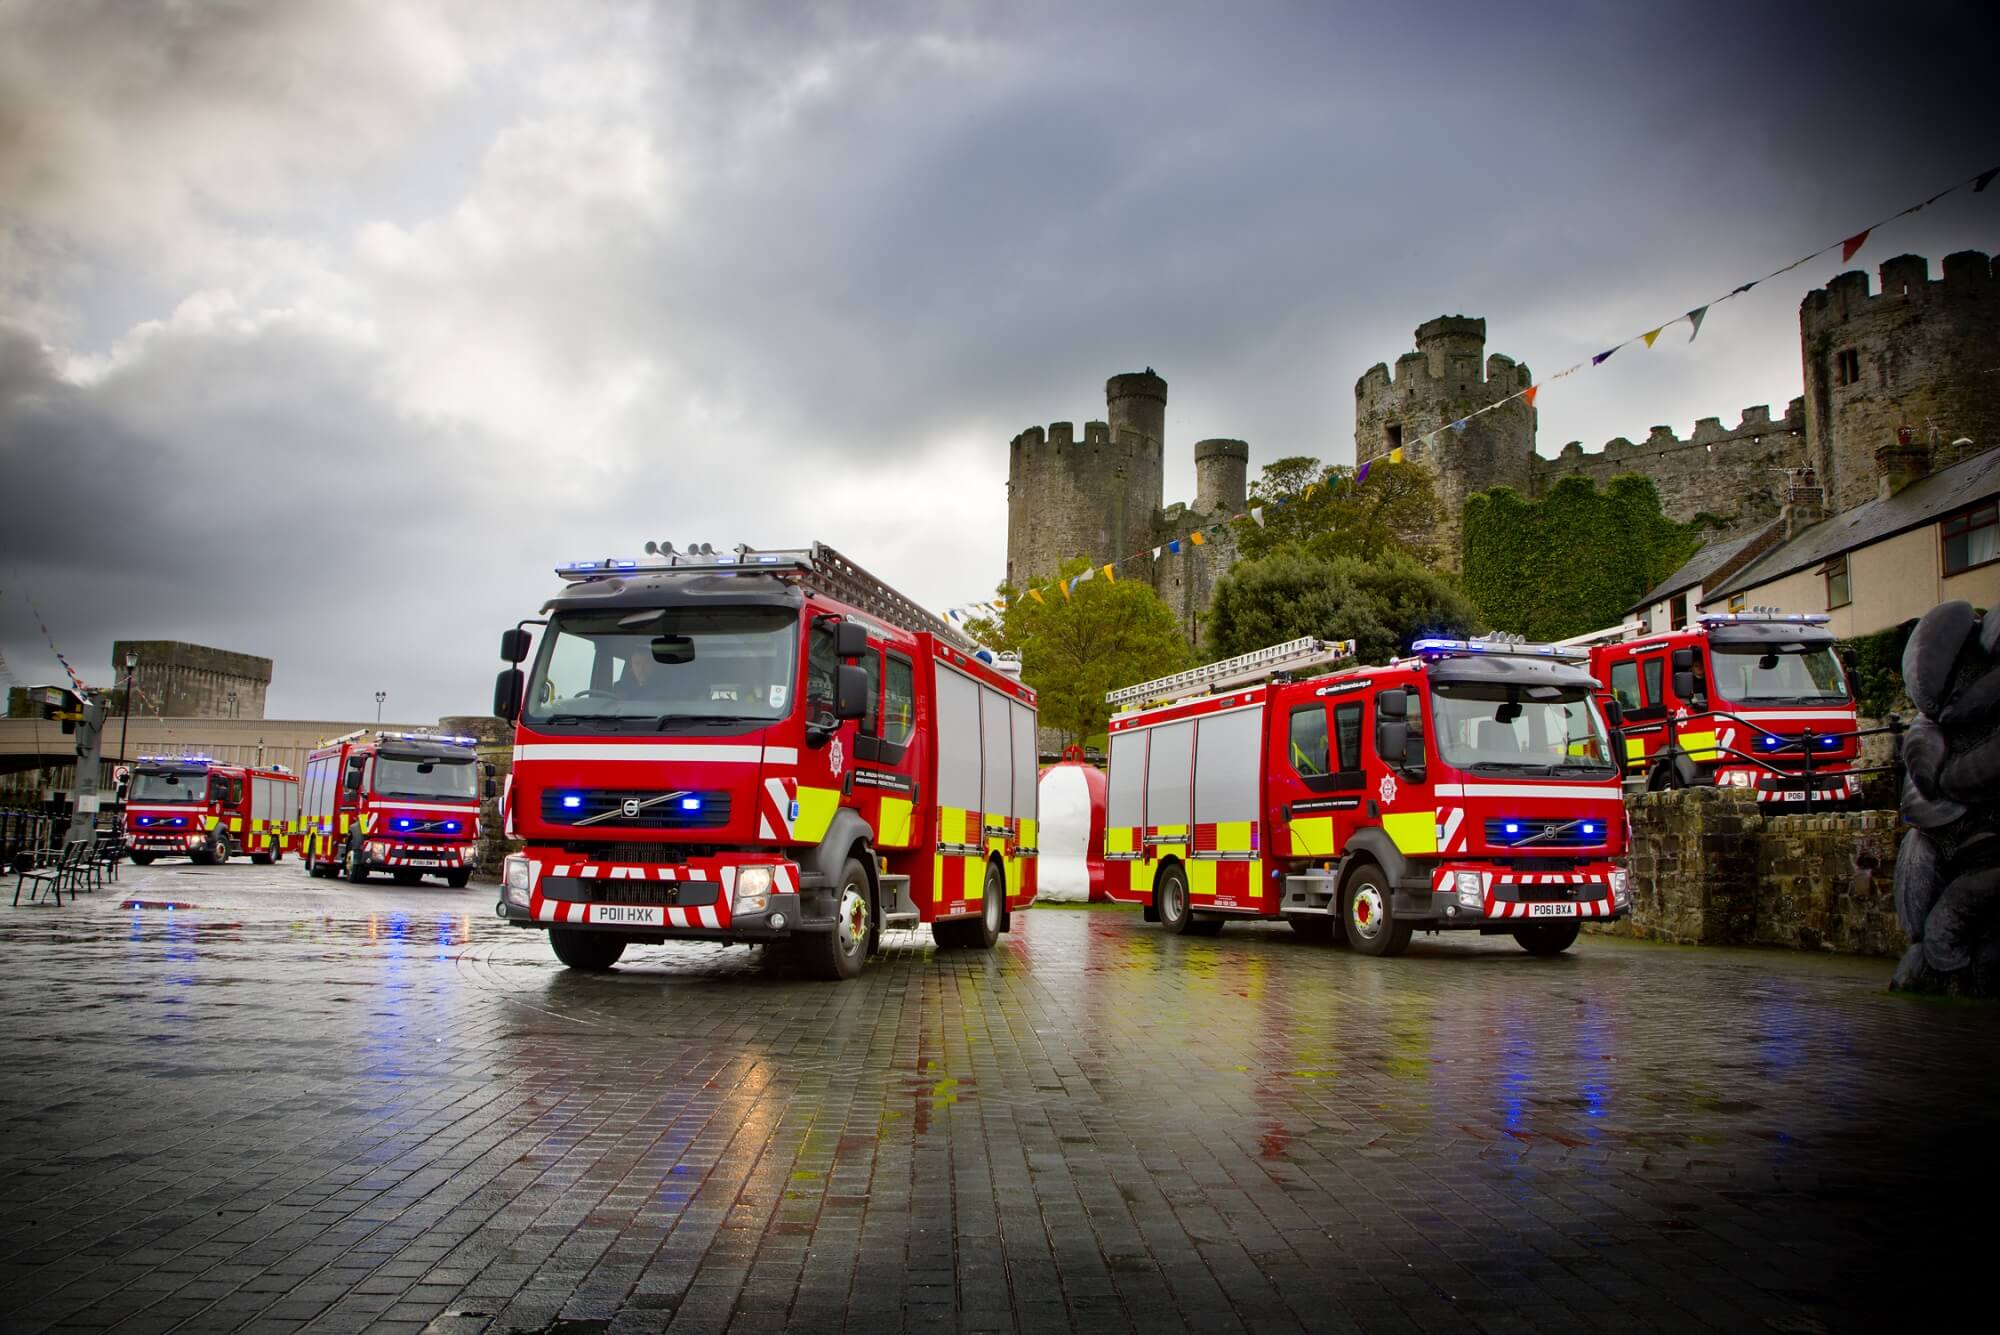 Parked fire engines in front of a castle in Wales to represent the emergency services.